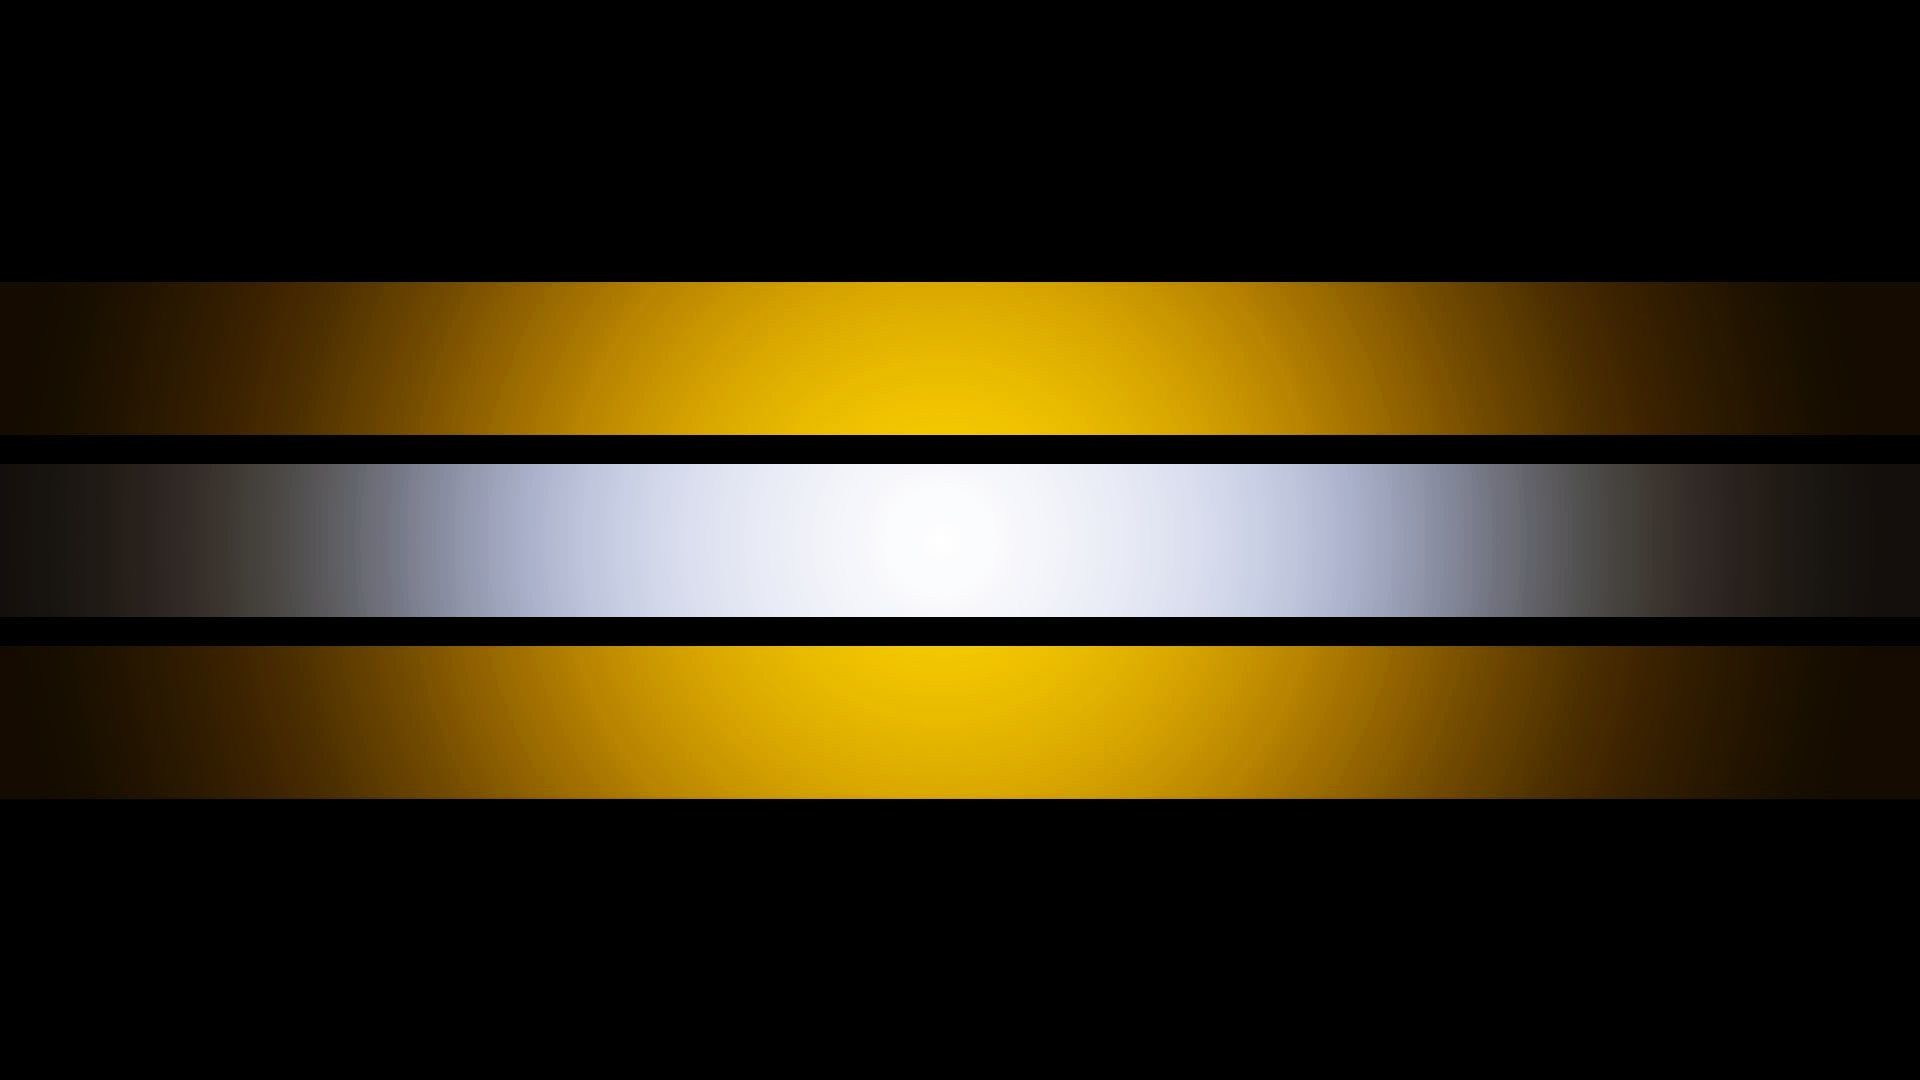 Black And Yellow Wallpaper 75 Images